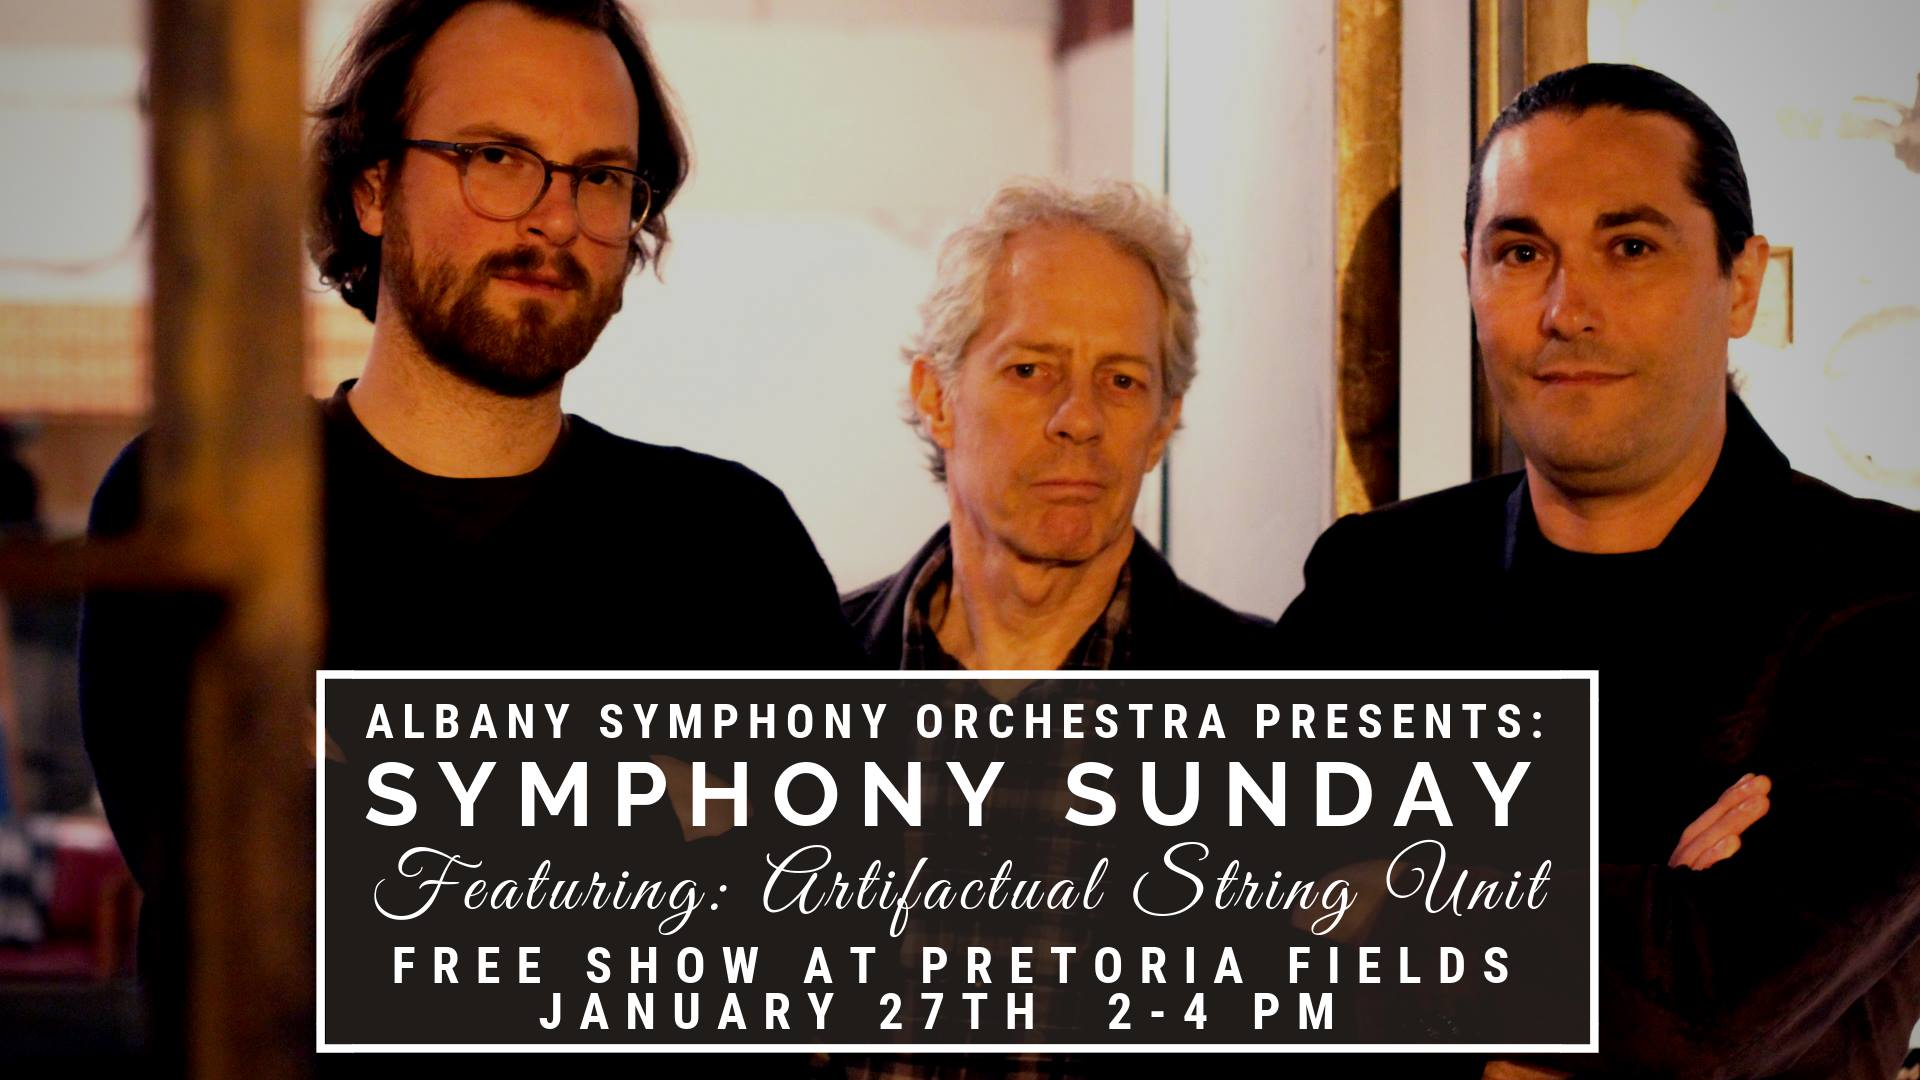 ASO Presents Symphony Sundays at Pretoria Fields